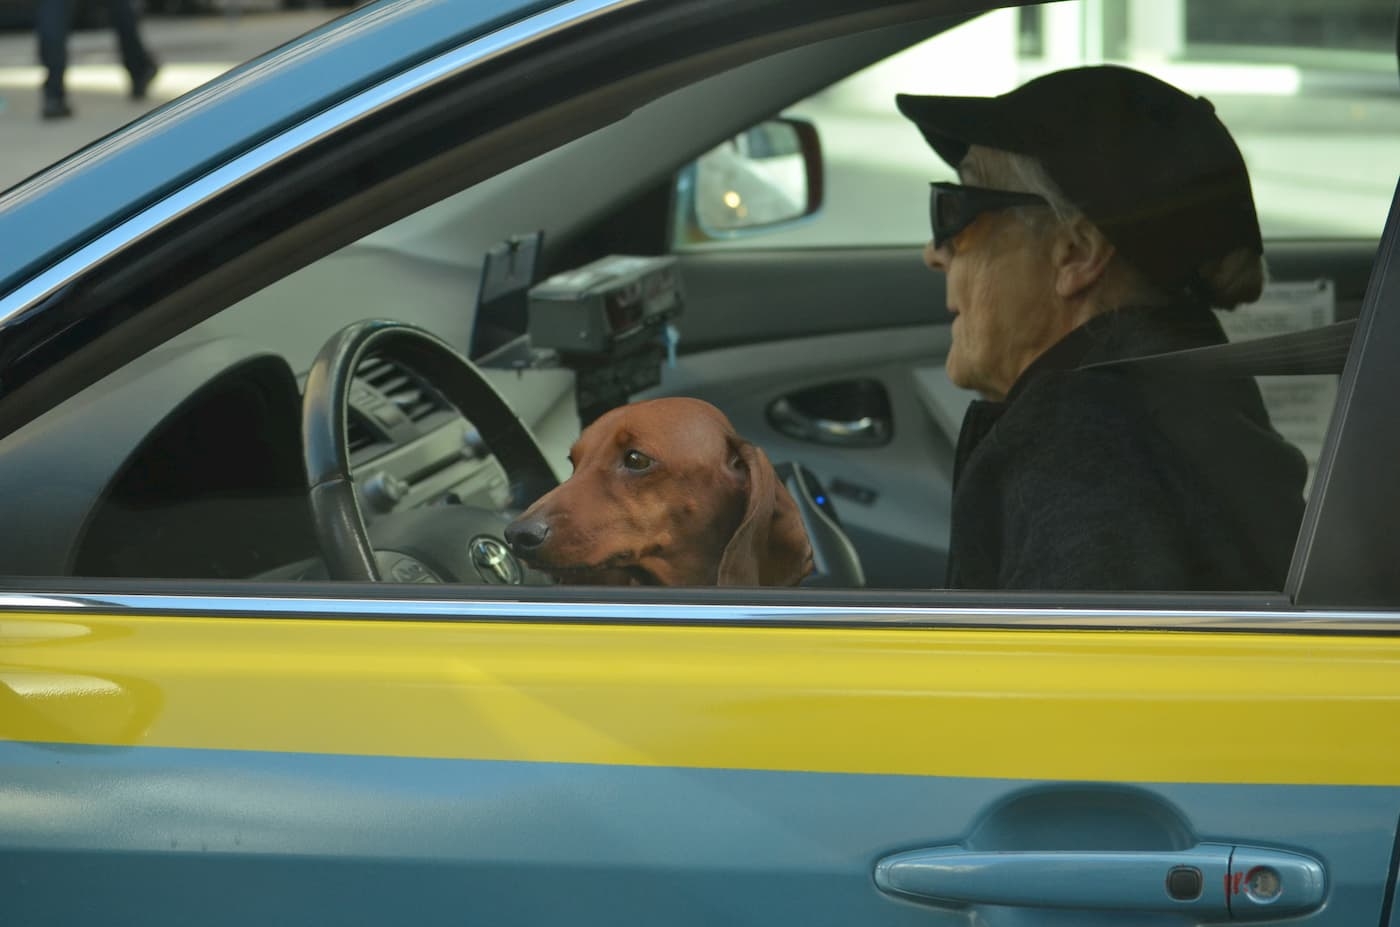 A senior driver traveling with her dog